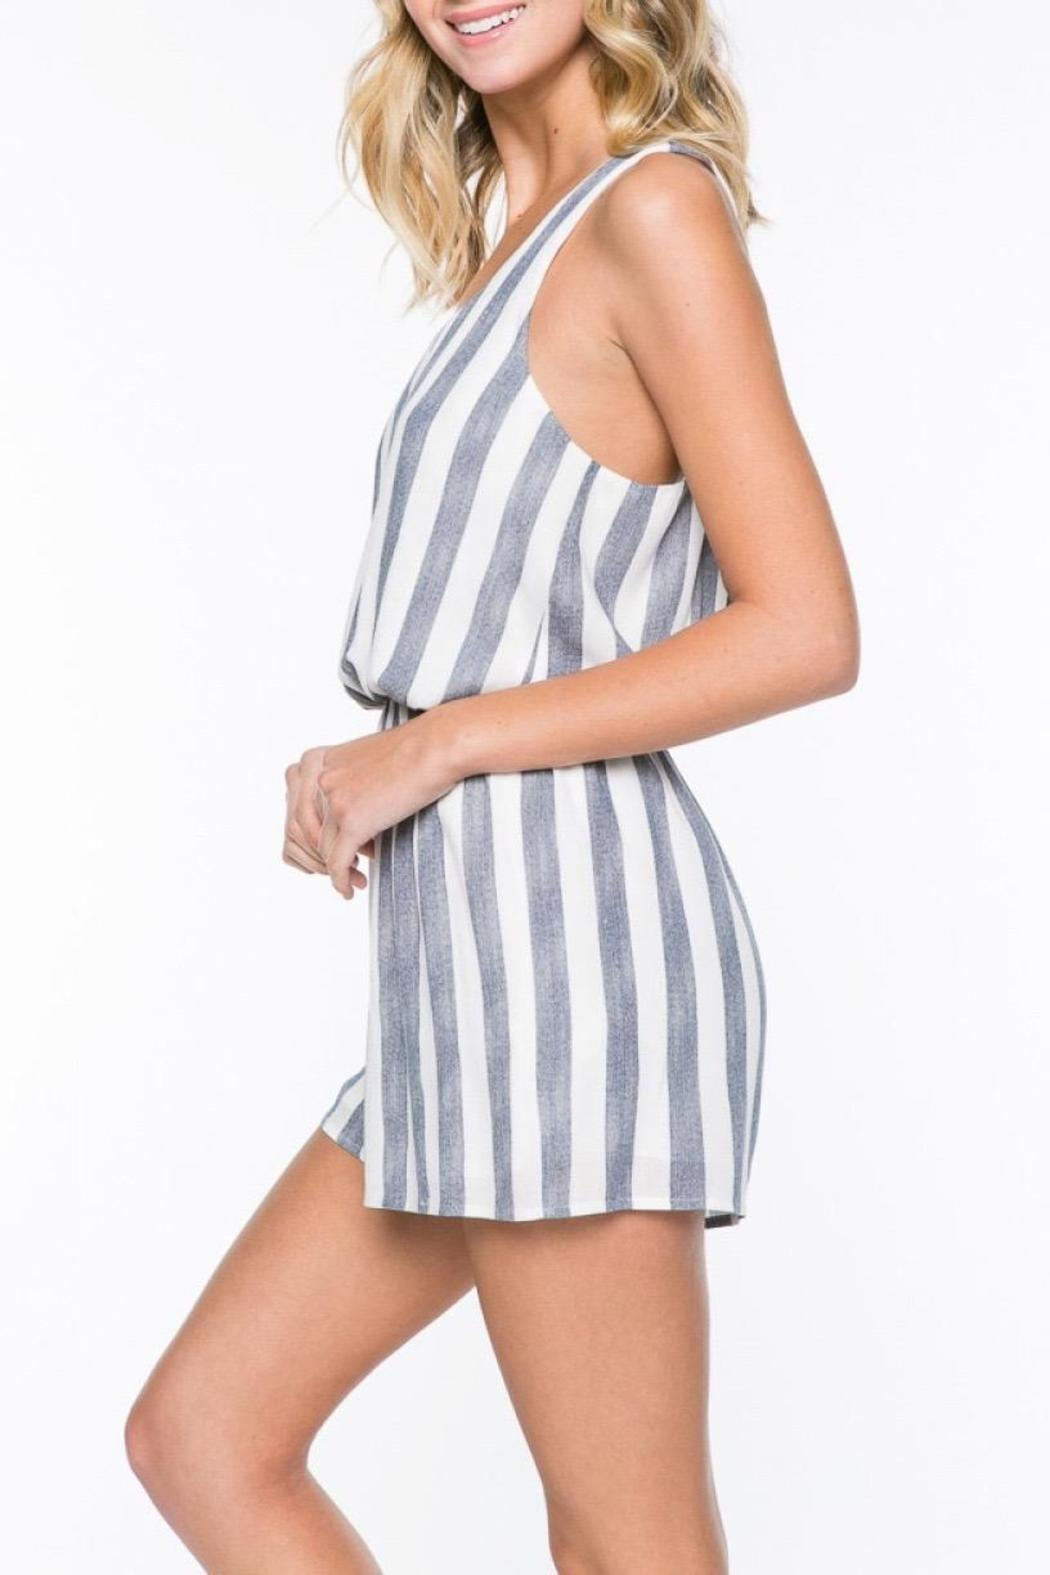 be837bdb42b Everly Navy Striped Romper from Los Angeles by Such A Time — Shoptiques